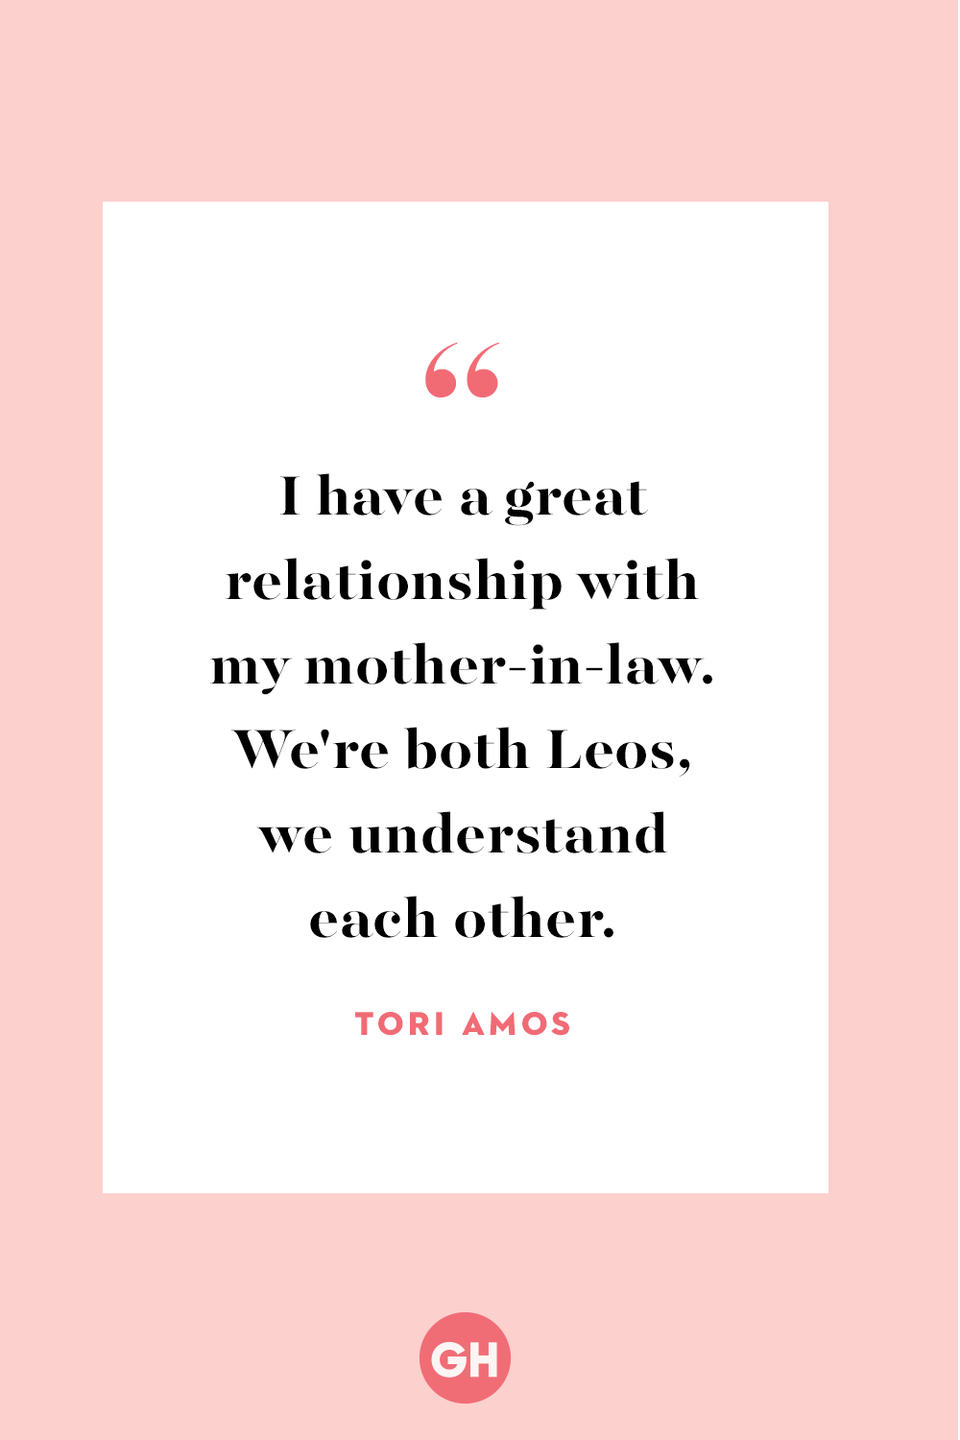 <p>I have a great relationship with my mother-in-law. We're both Leos, we understand each other.</p>